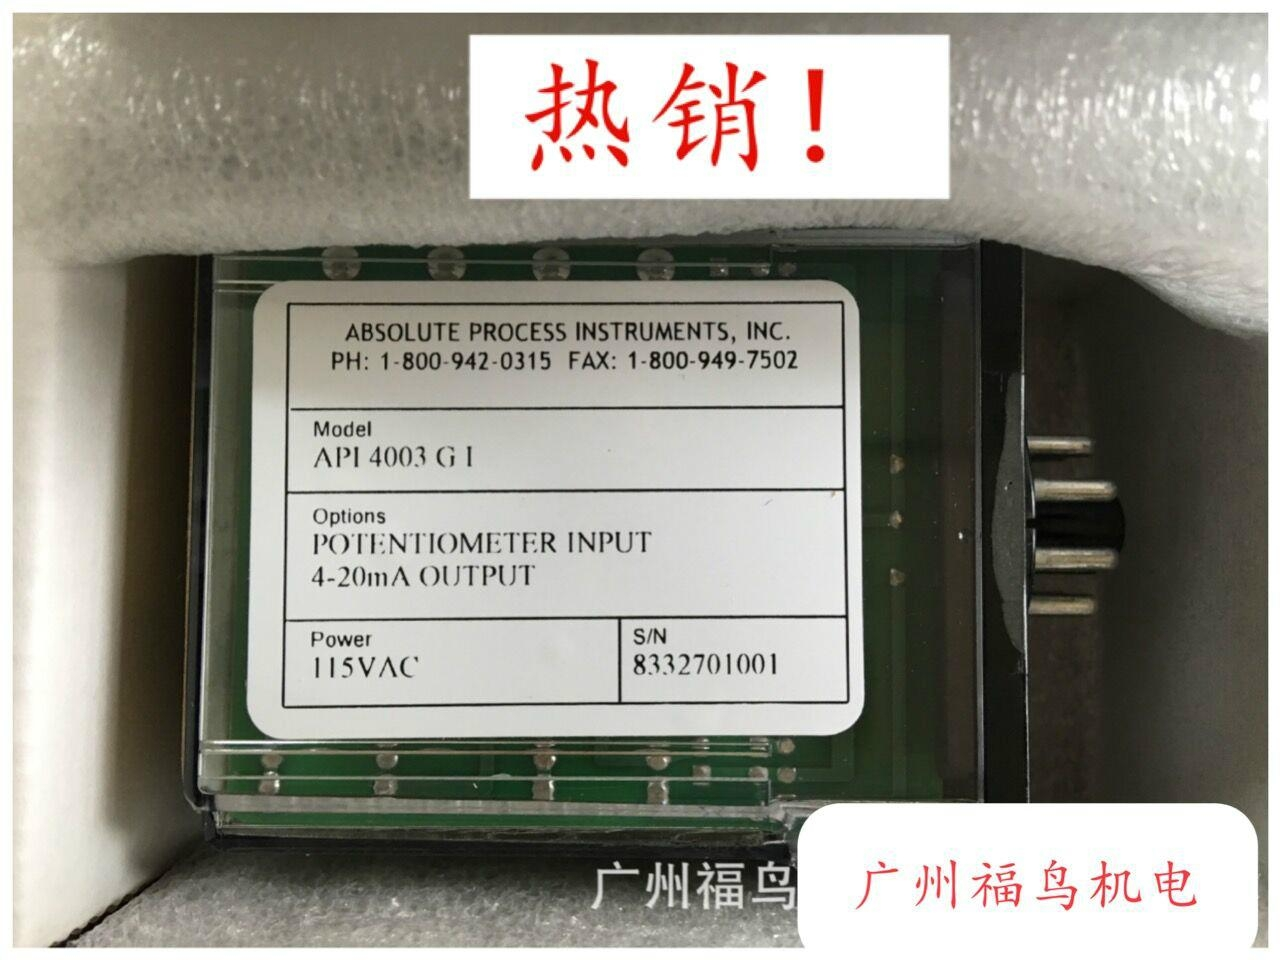 API(Absolute Process Instruments)信号变送器, 型号:API4003GI